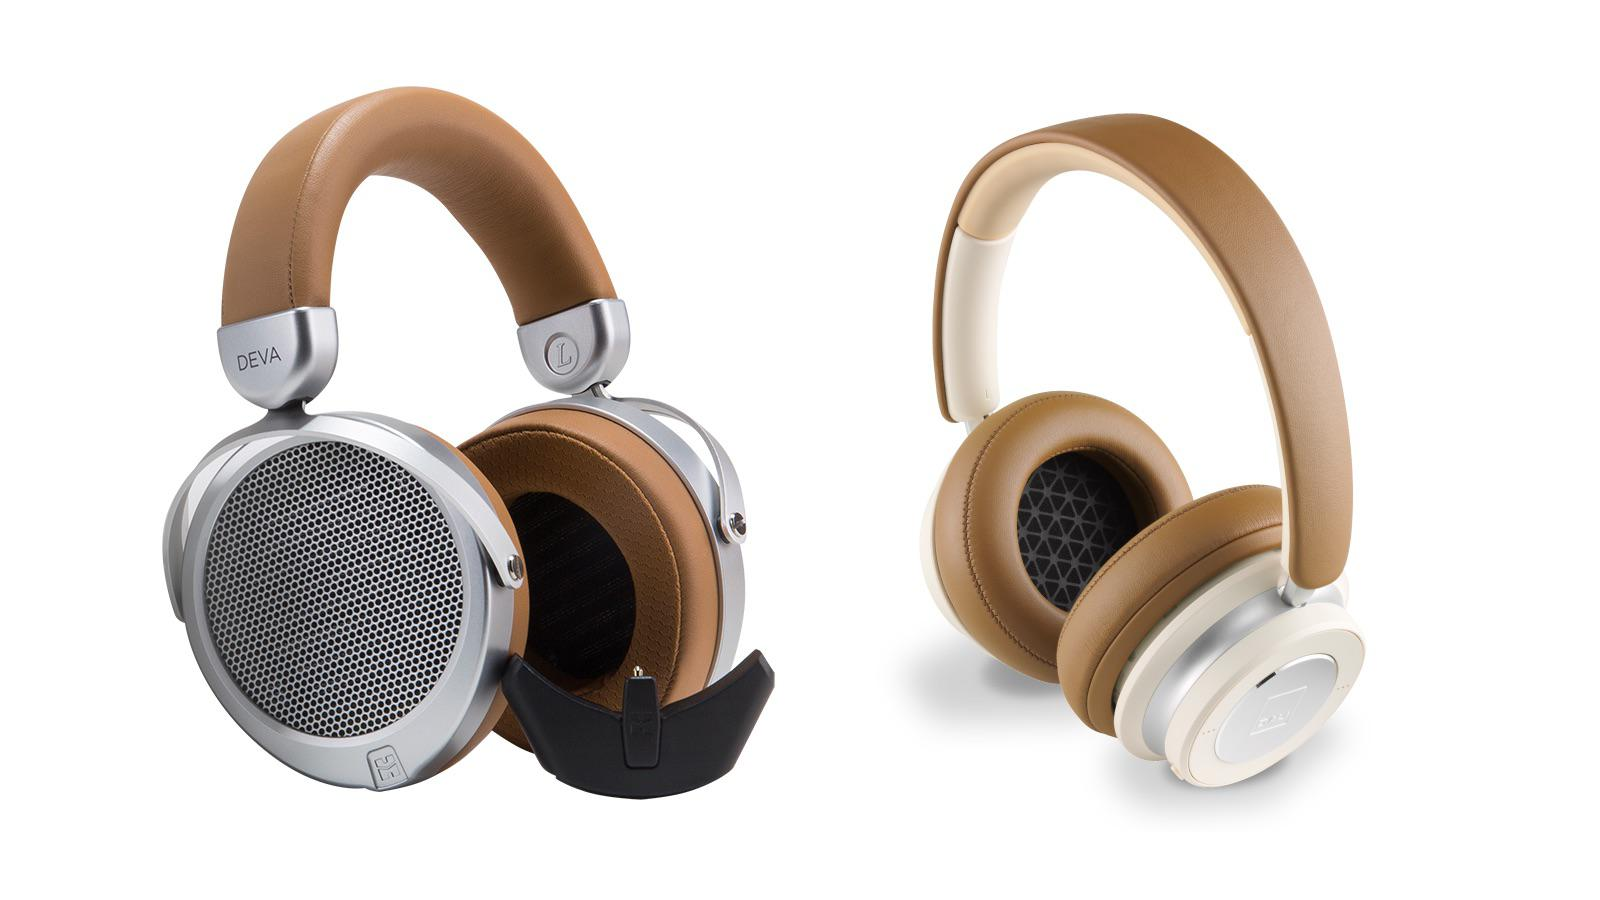 HiFiMan Deva vs. Dali IO-6 Wireless Headphones